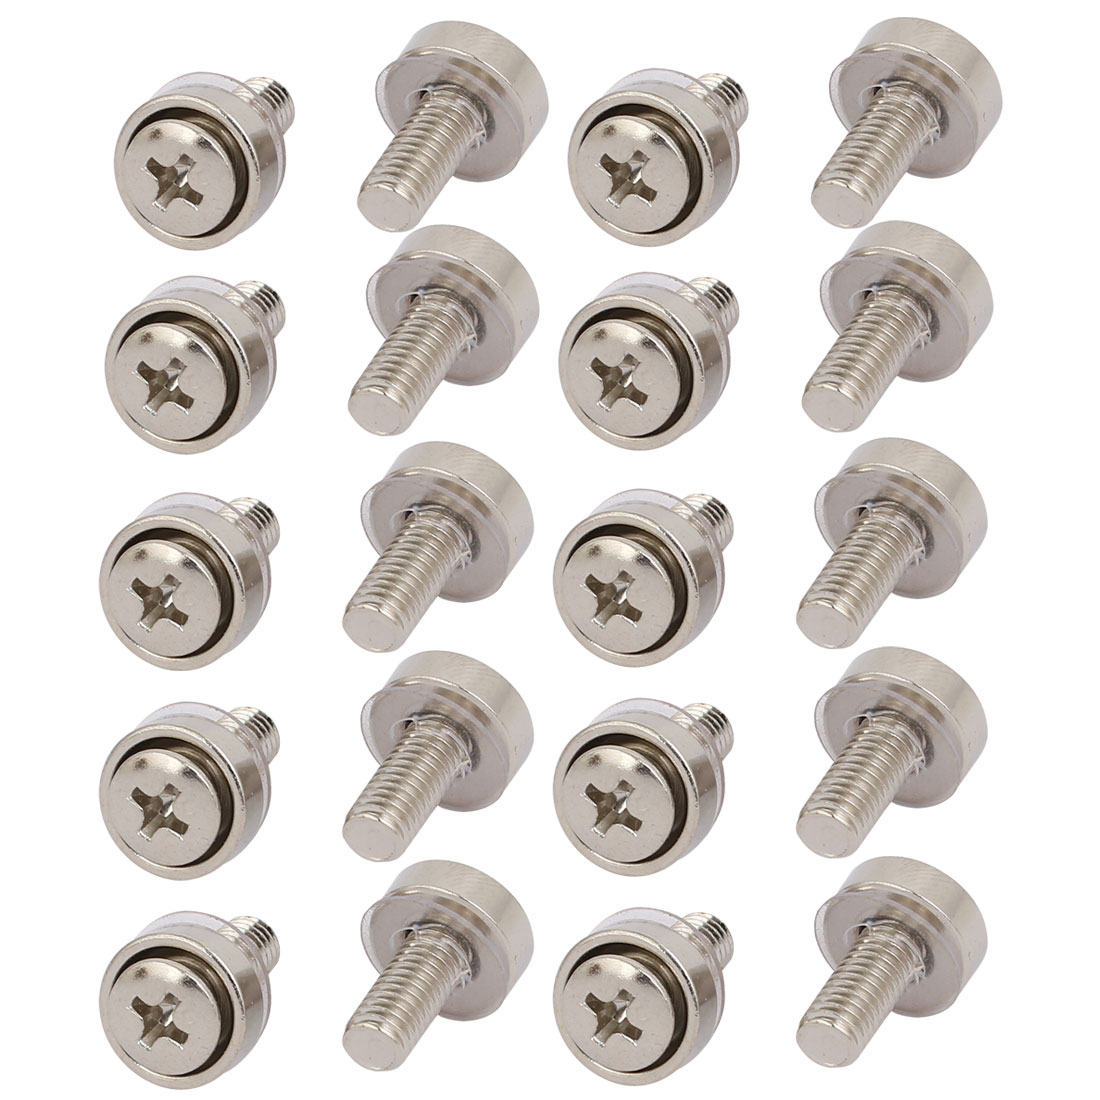 20pcs M6 Carbon Steel Mounting Screws Silver Tone for Server Rack Cabinet